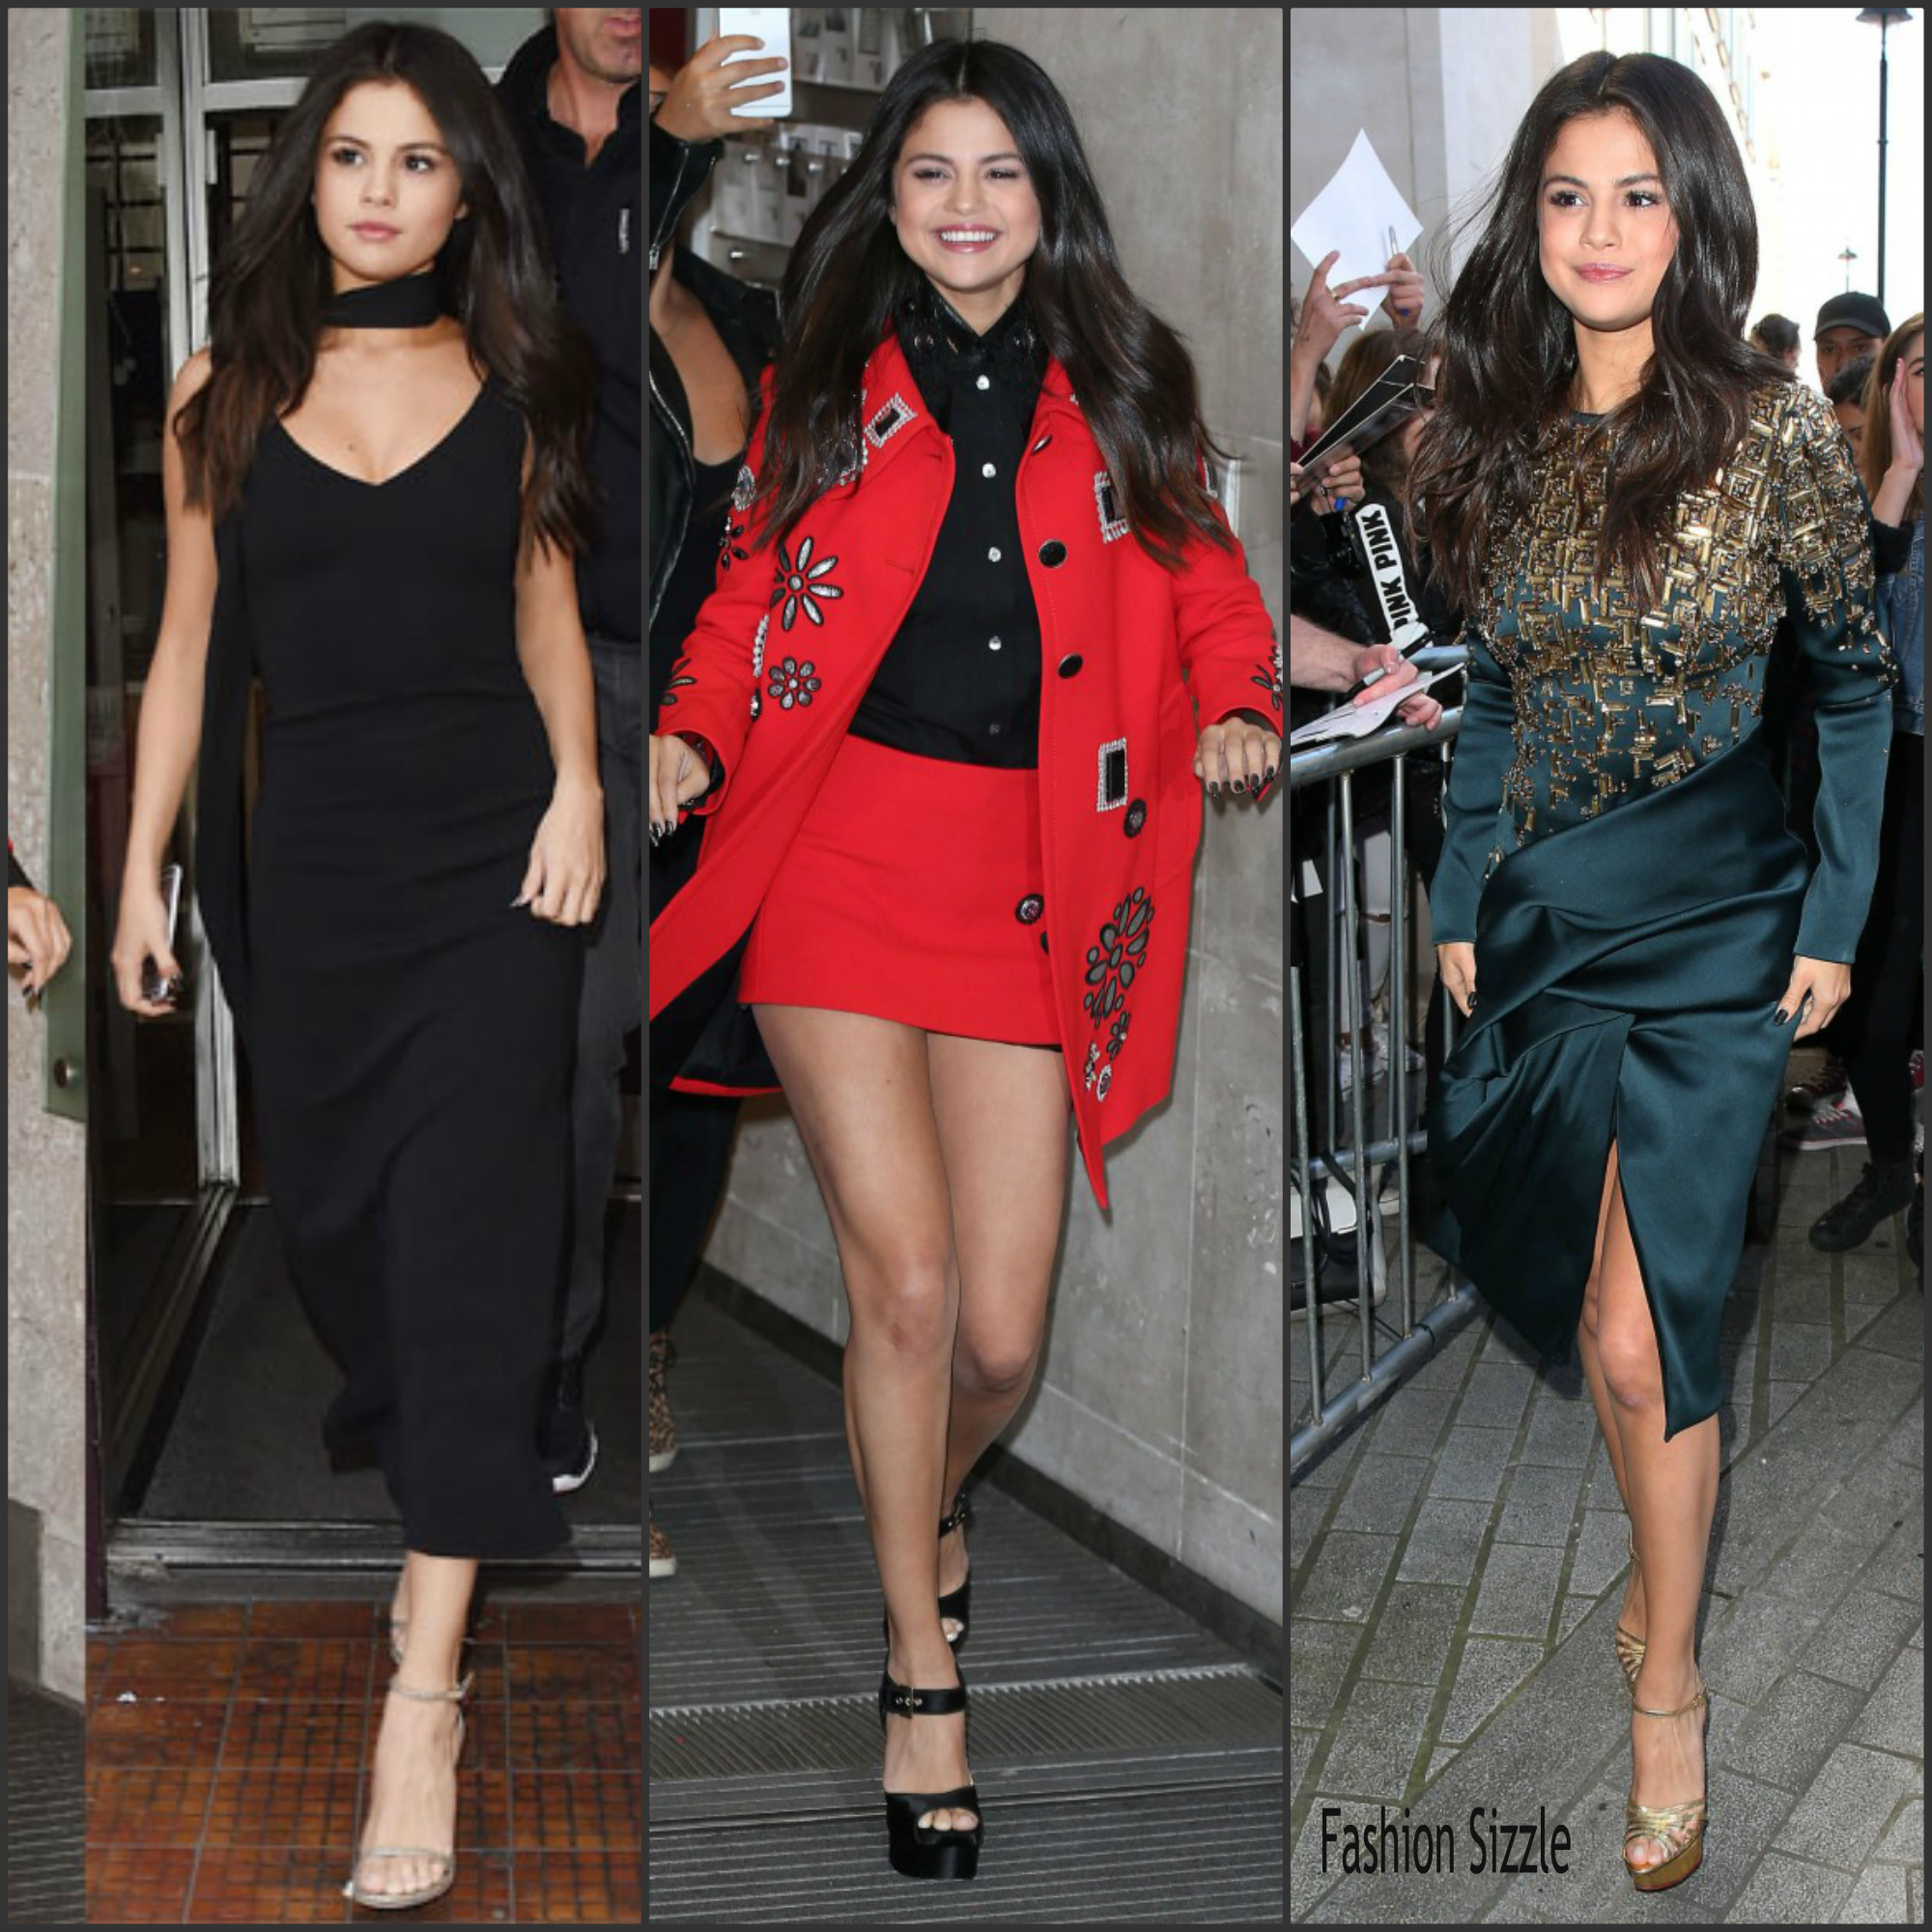 selena-gomez-in-antonio-berardi-marc-jacobs-atea-oceanie-revival-london-tour-part-2